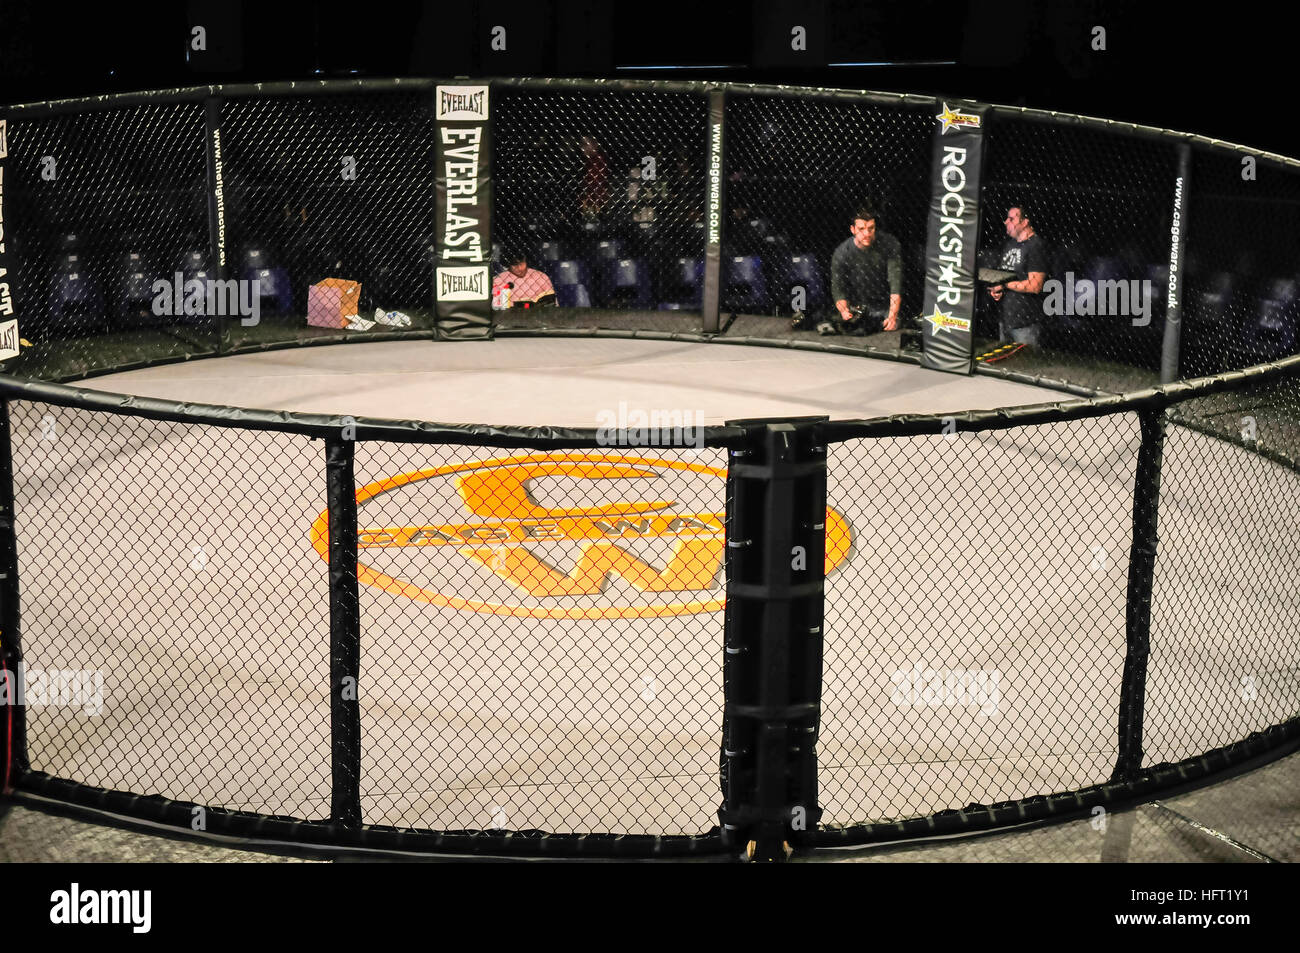 Empty cage at a Cage Fighting tournament before the match - Stock Image